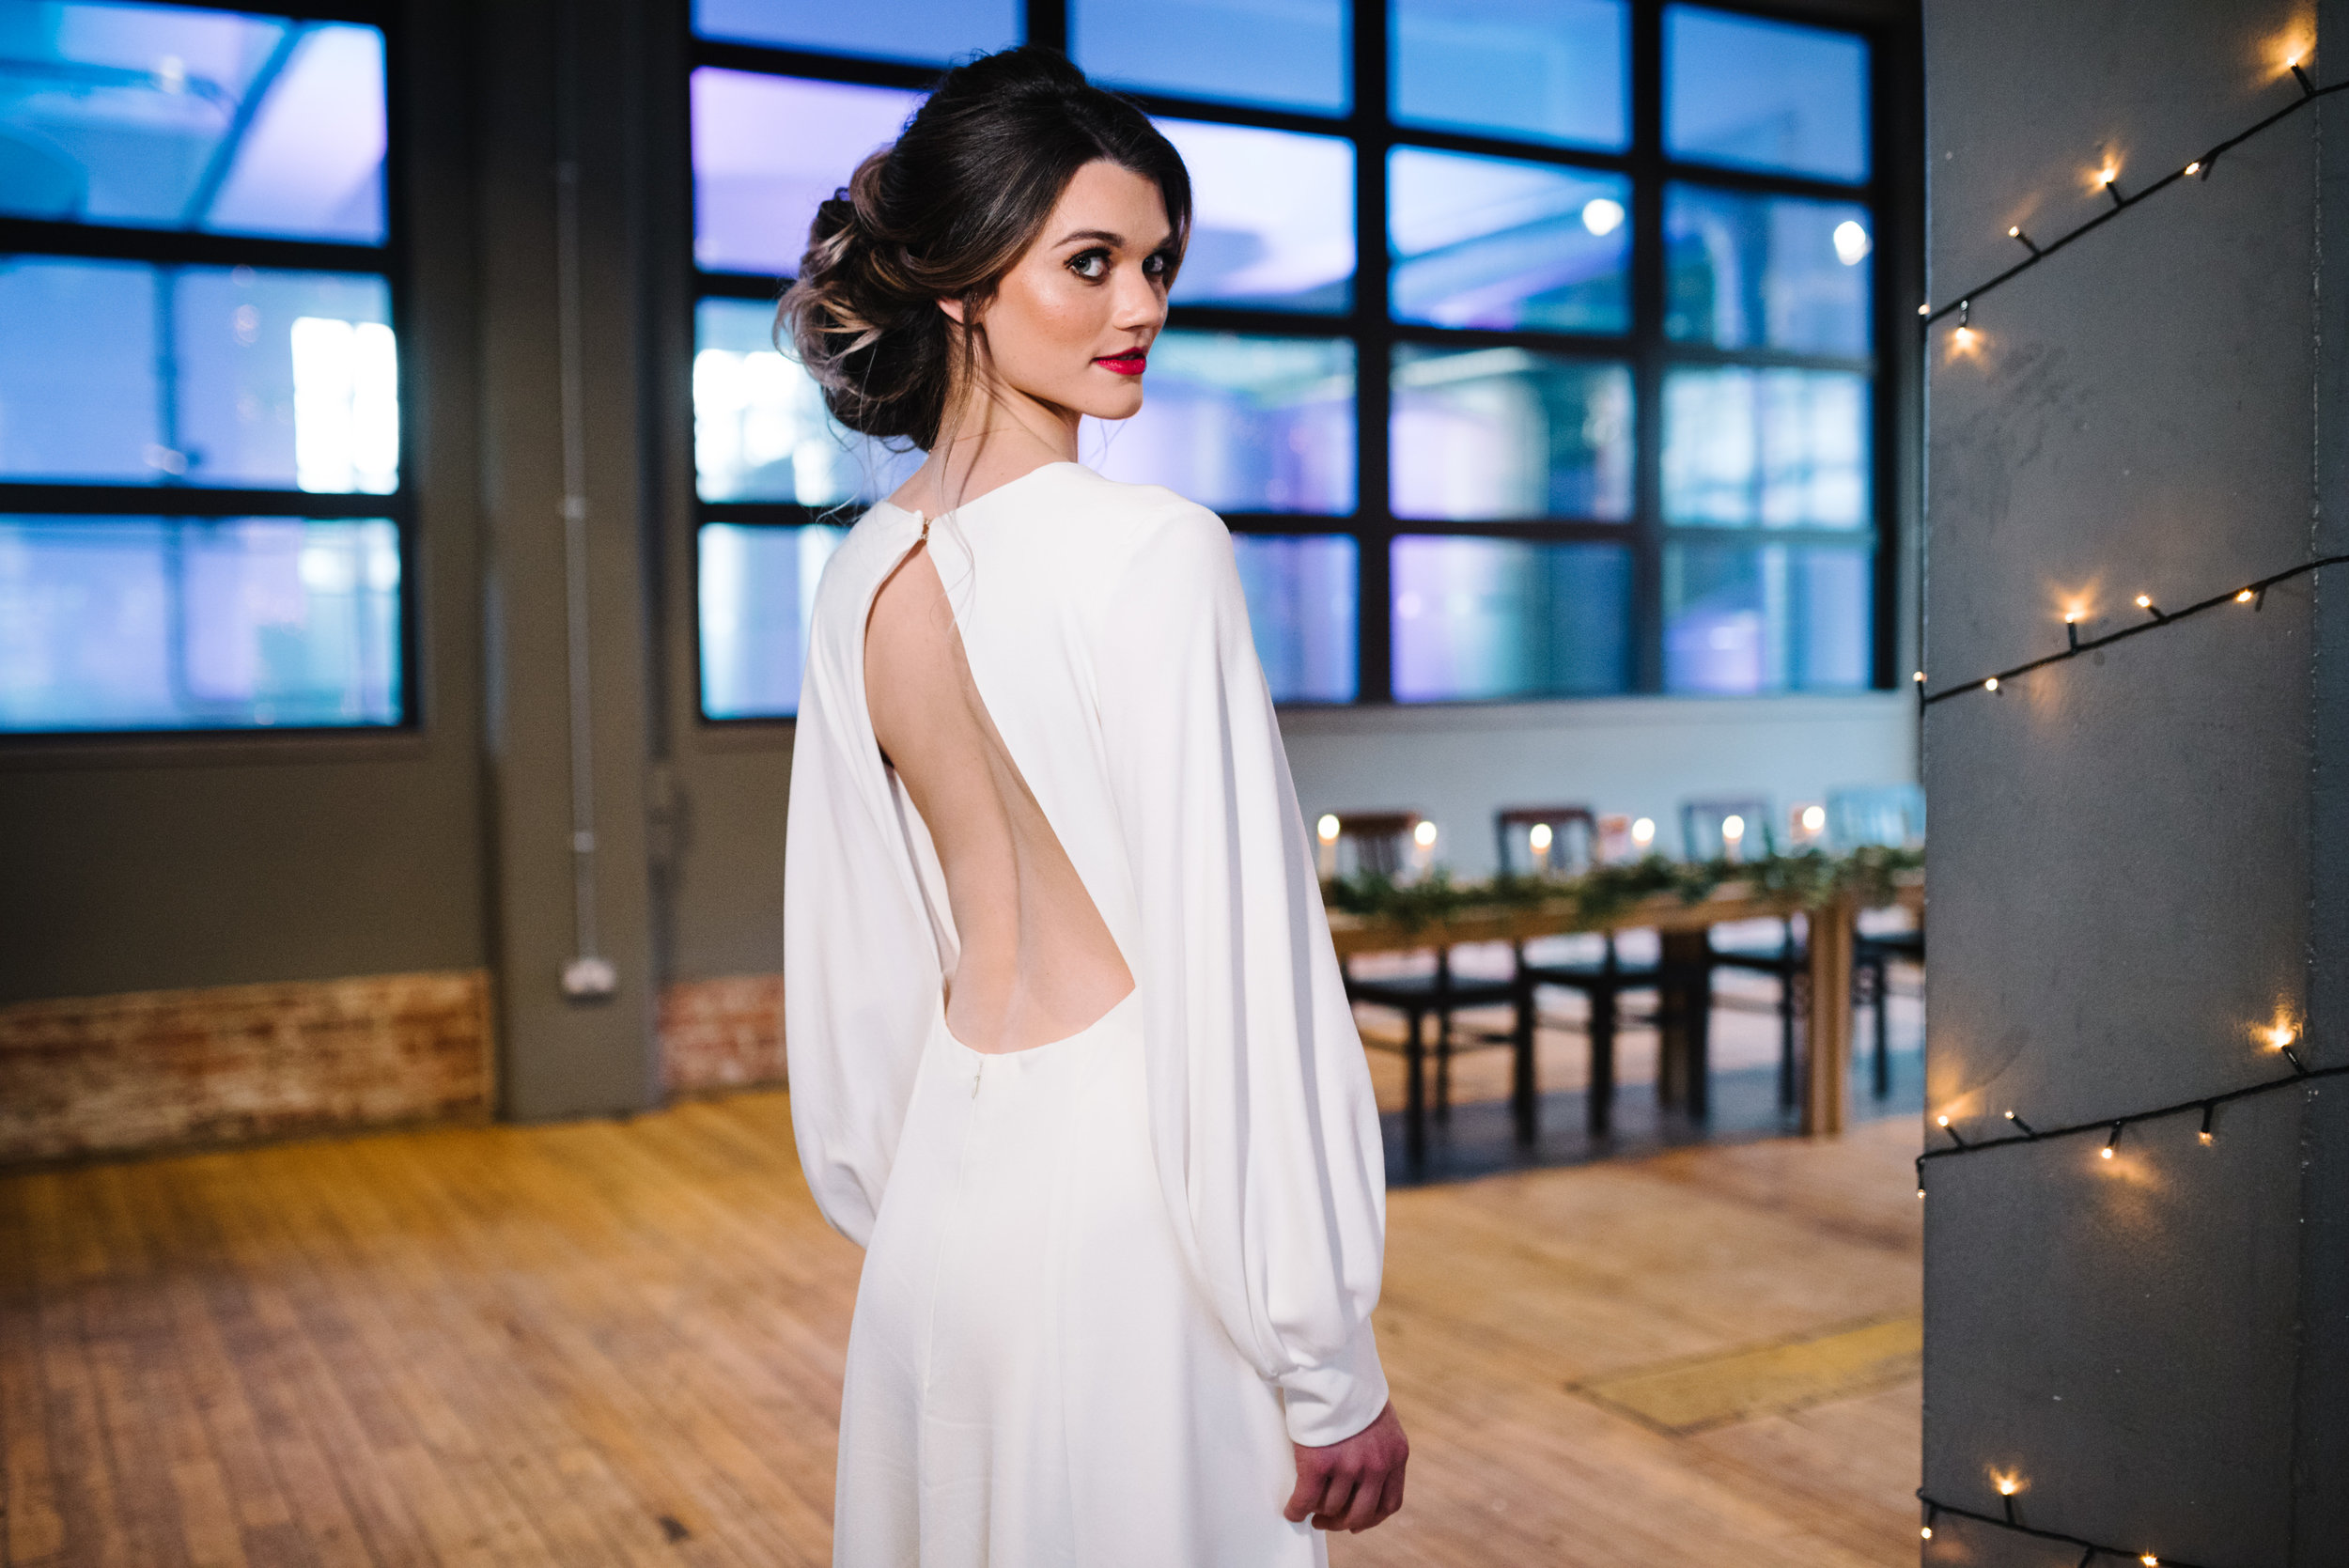 Modern Wedding Inspiration Shoot in Glasgow Brewery With a Frill Installation, Candy Floss and Neon 00205.jpg